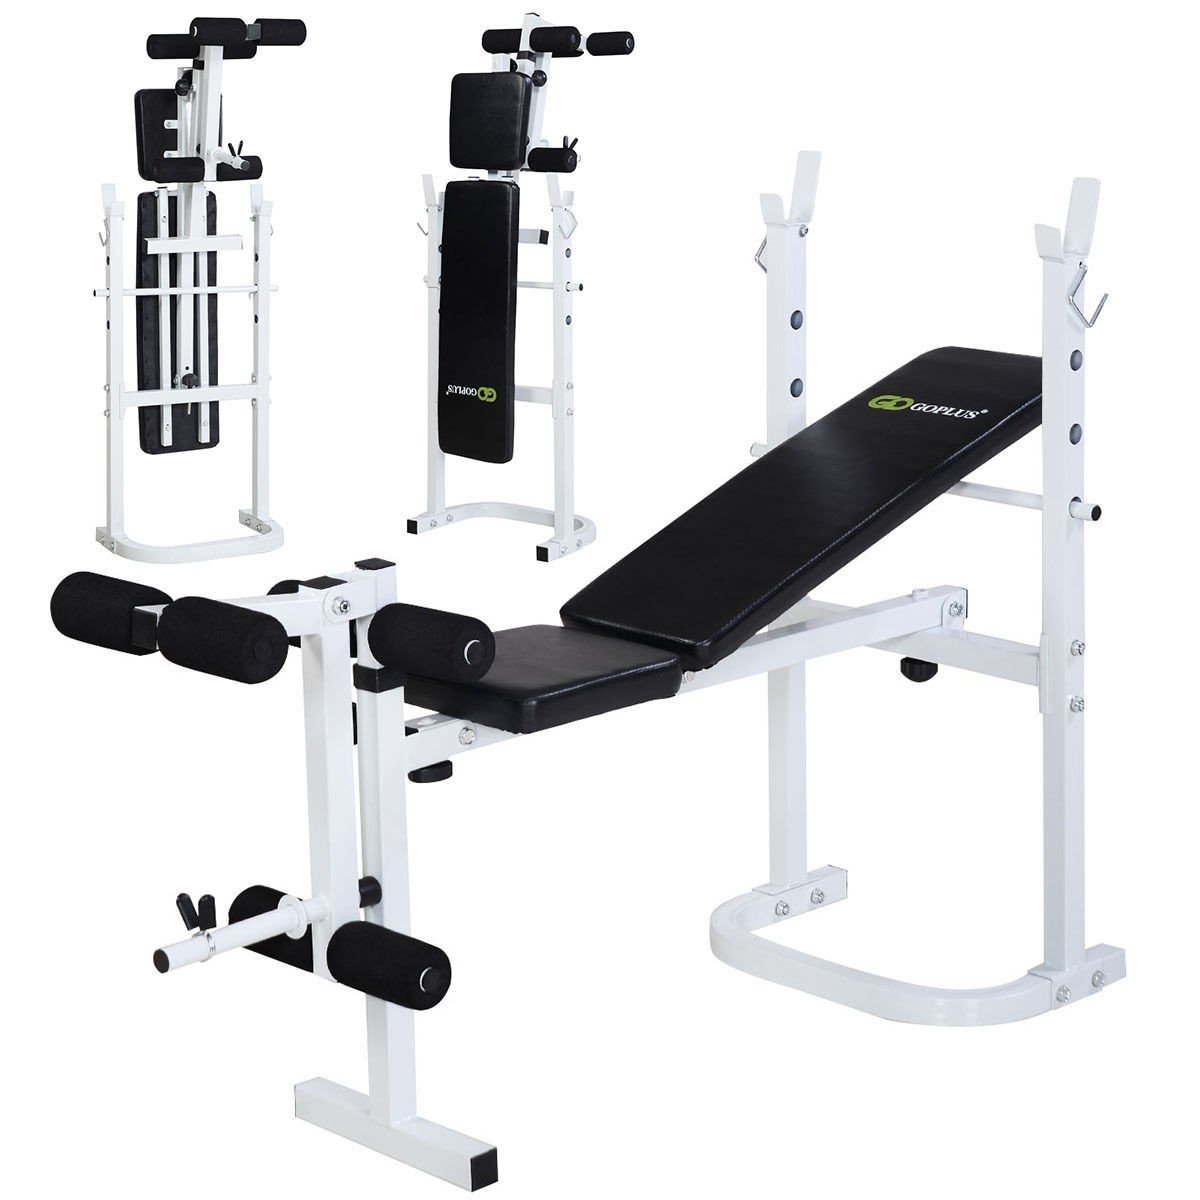 Costway Olympic Folding Weight Bench Incline Lift Workout Press Home by Apontus